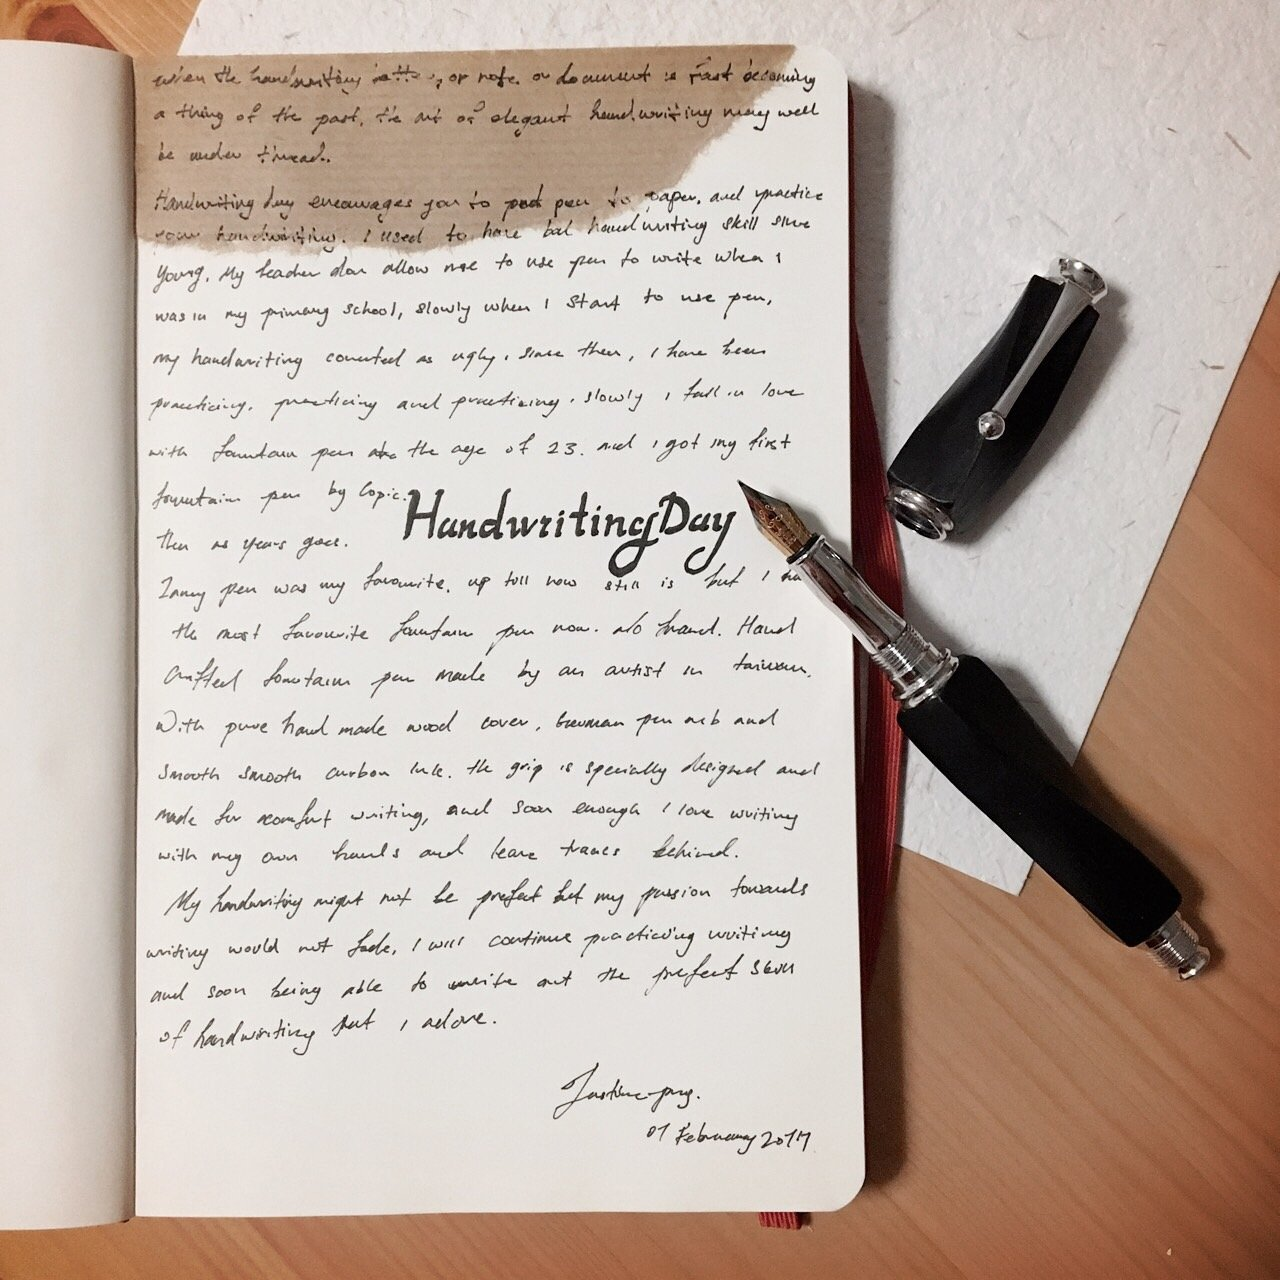 My Confession to Handwriting